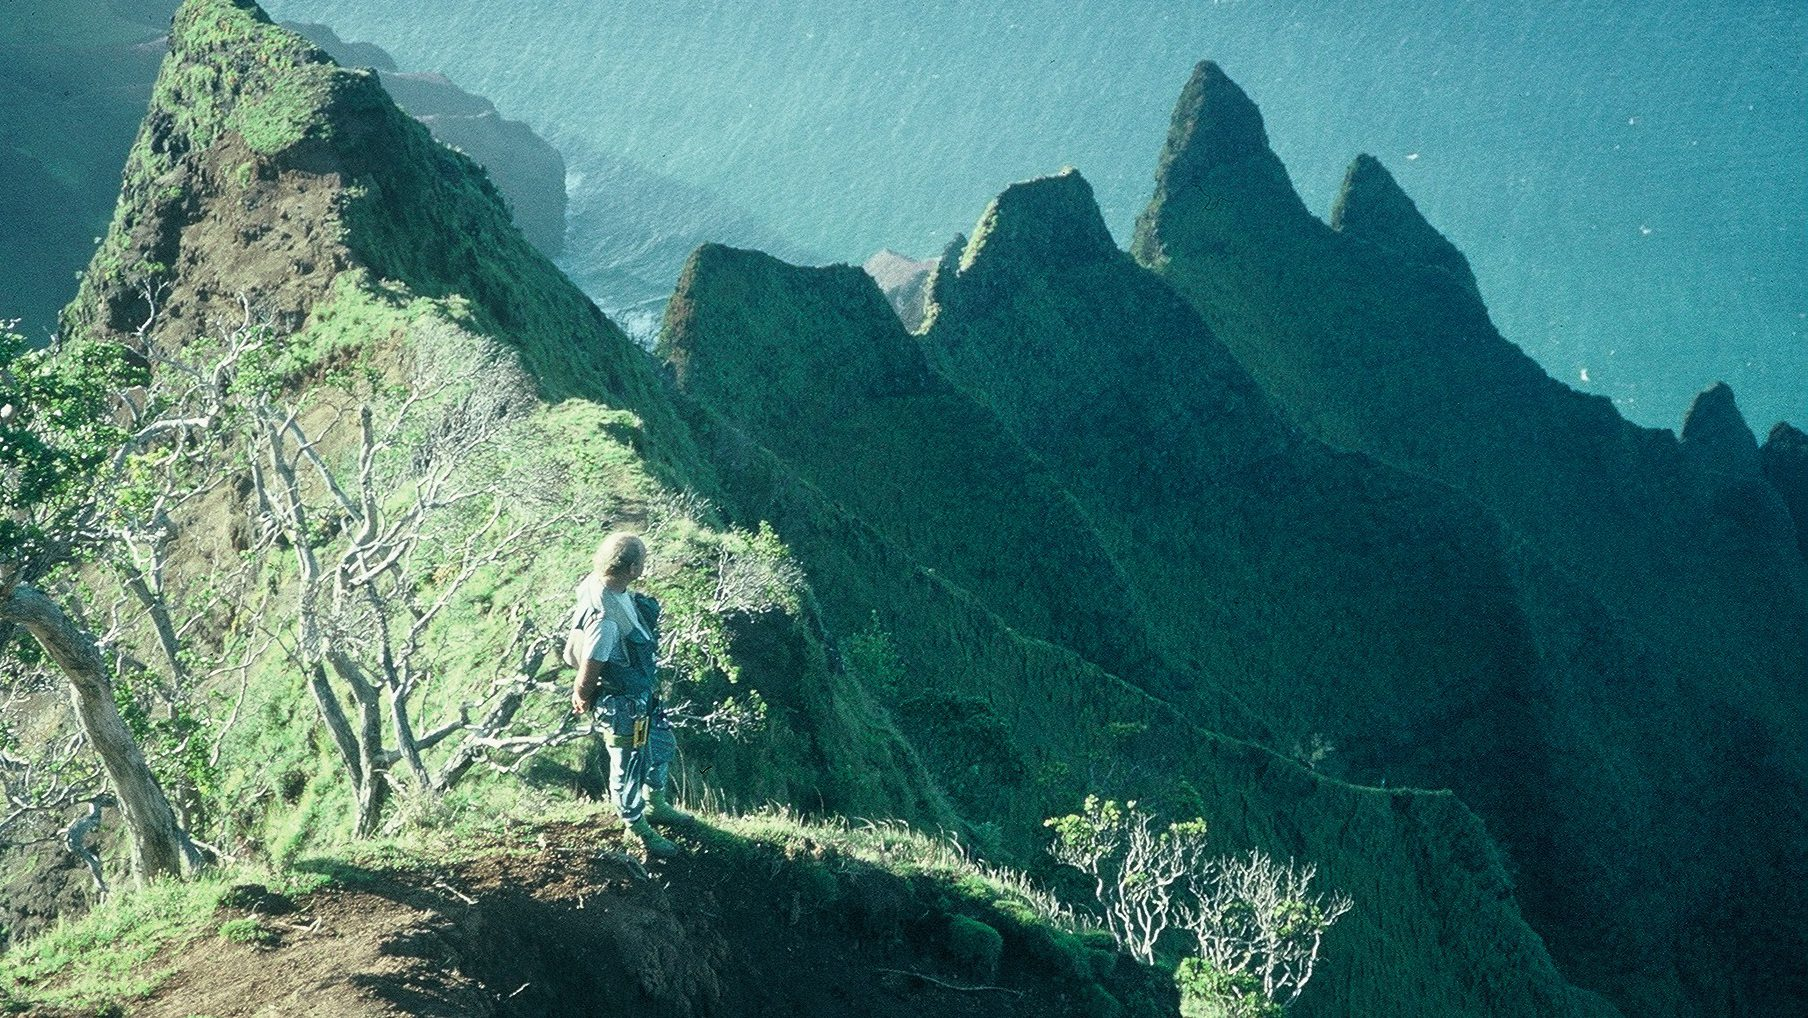 Steve Perlman on the Kalalau cliffs on the Hawaiian island of Kauai.